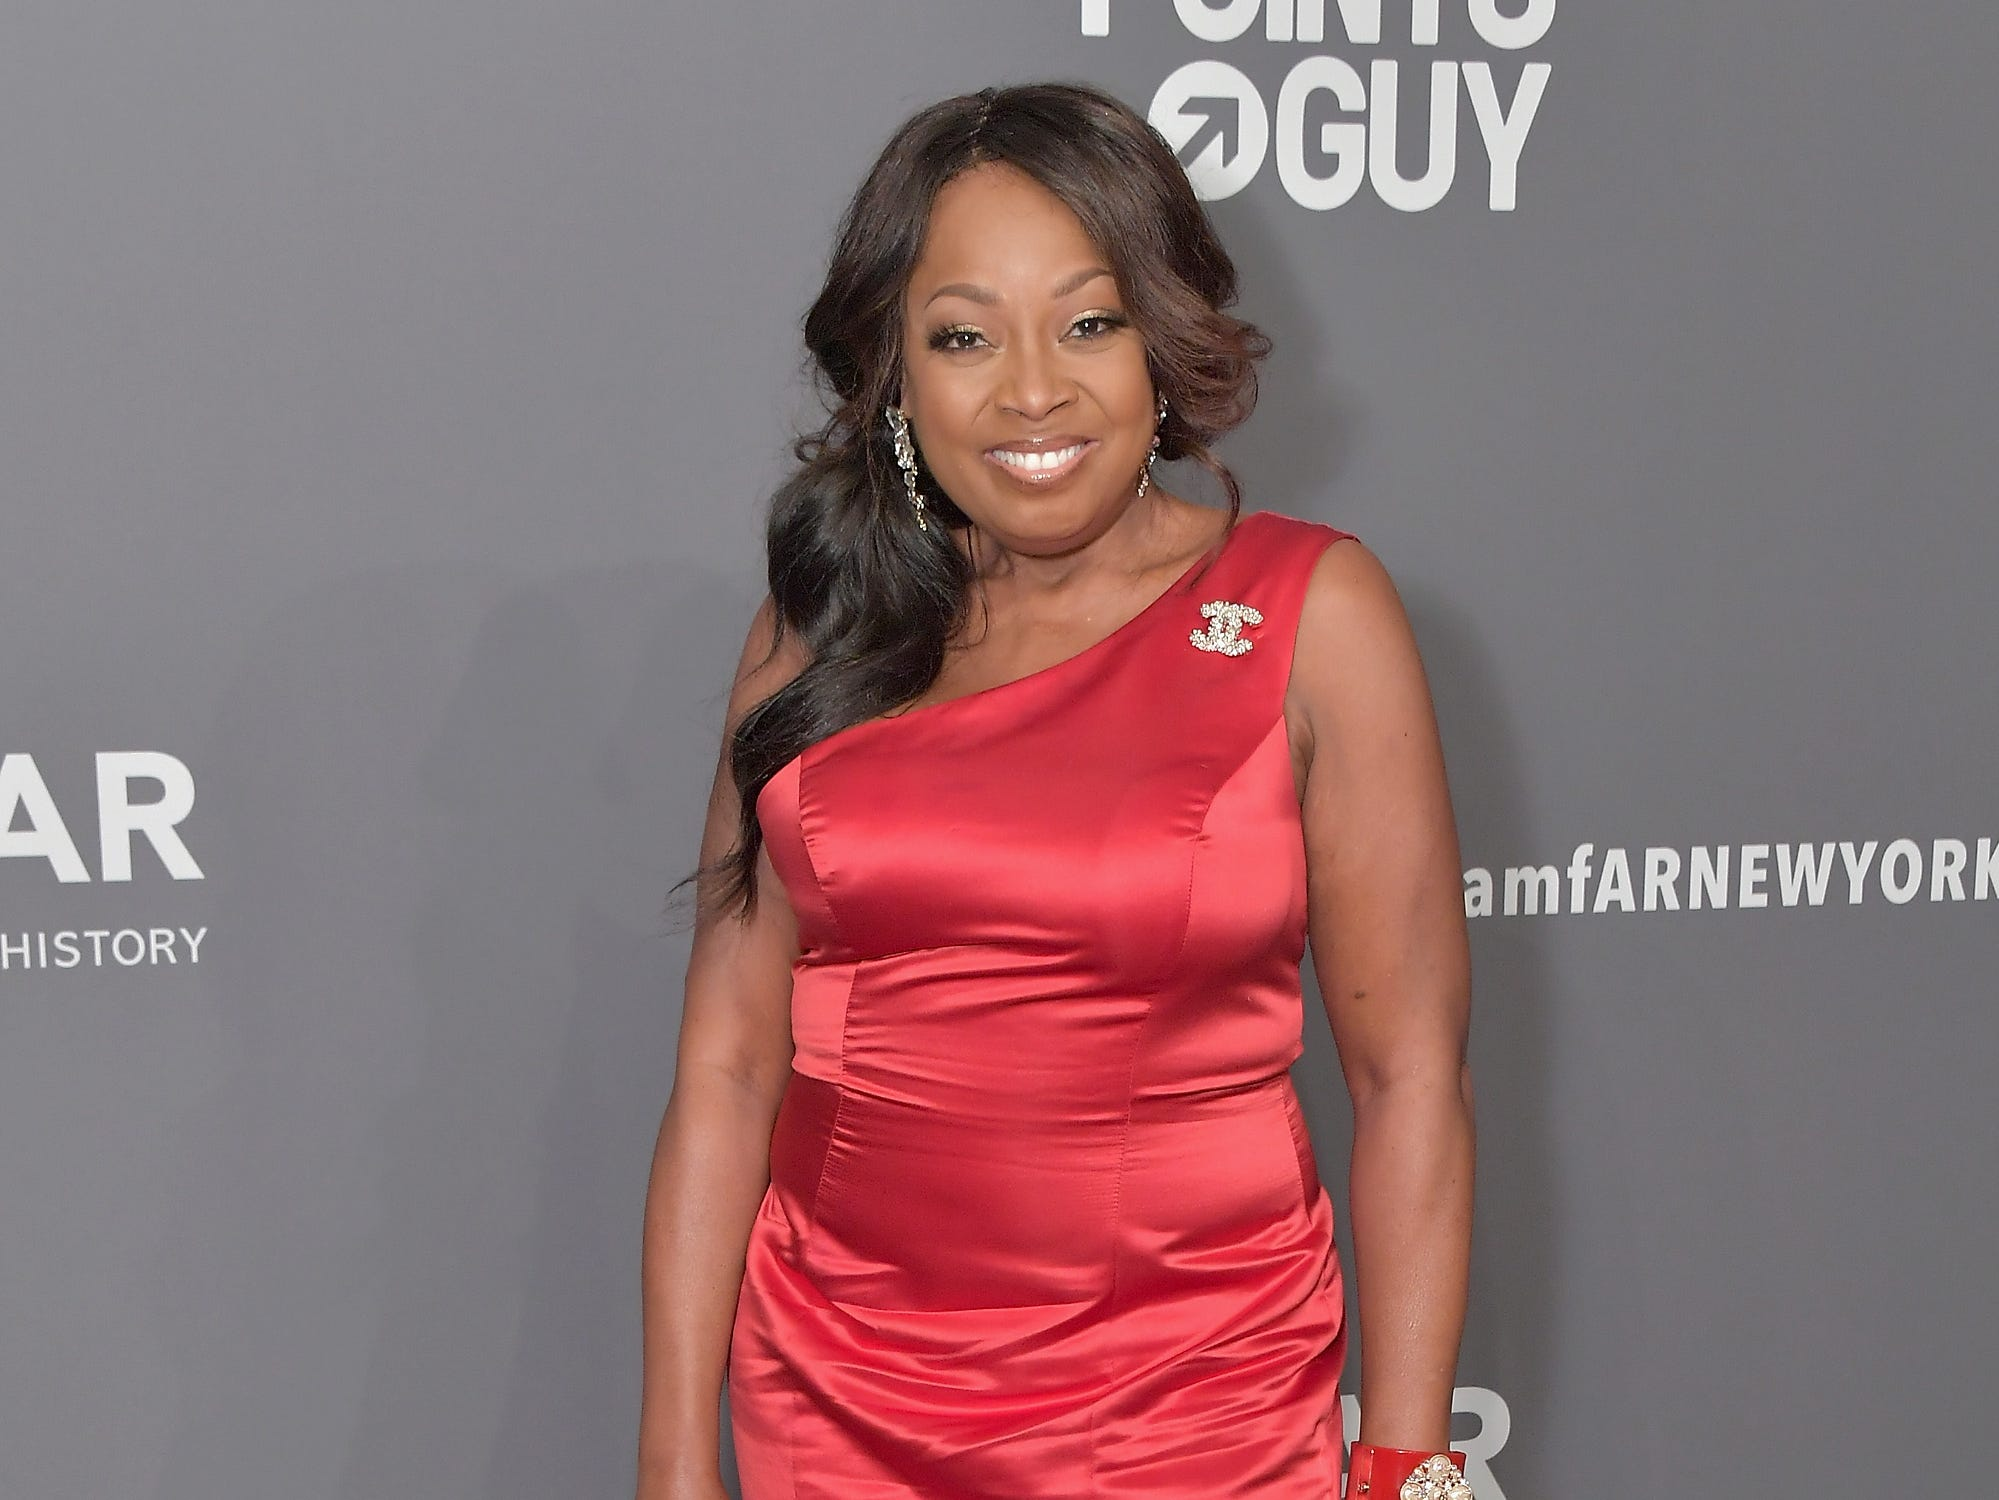 NEW YORK, NY - FEBRUARY 06:  Star Jones attends the amfAR New York Gala 2019 at Cipriani Wall Street on February 6, 2019 in New York City.  (Photo by Michael Loccisano/Wire Image) ORG XMIT: 775293218 ORIG FILE ID: 1094611890